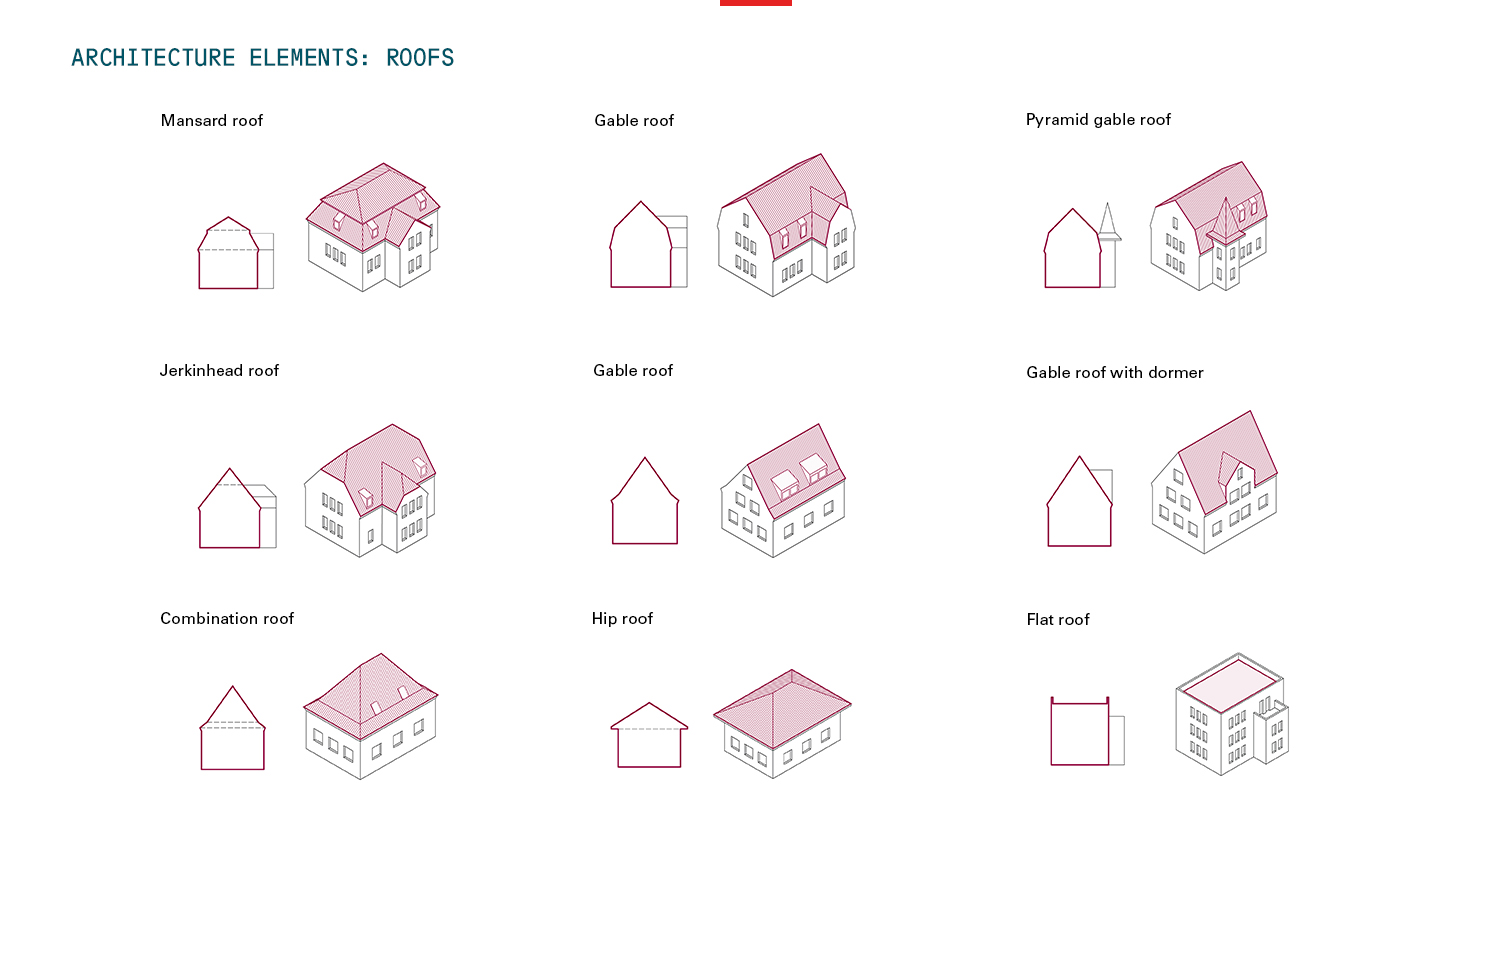 Architecture elements_roofs Strelka KB}